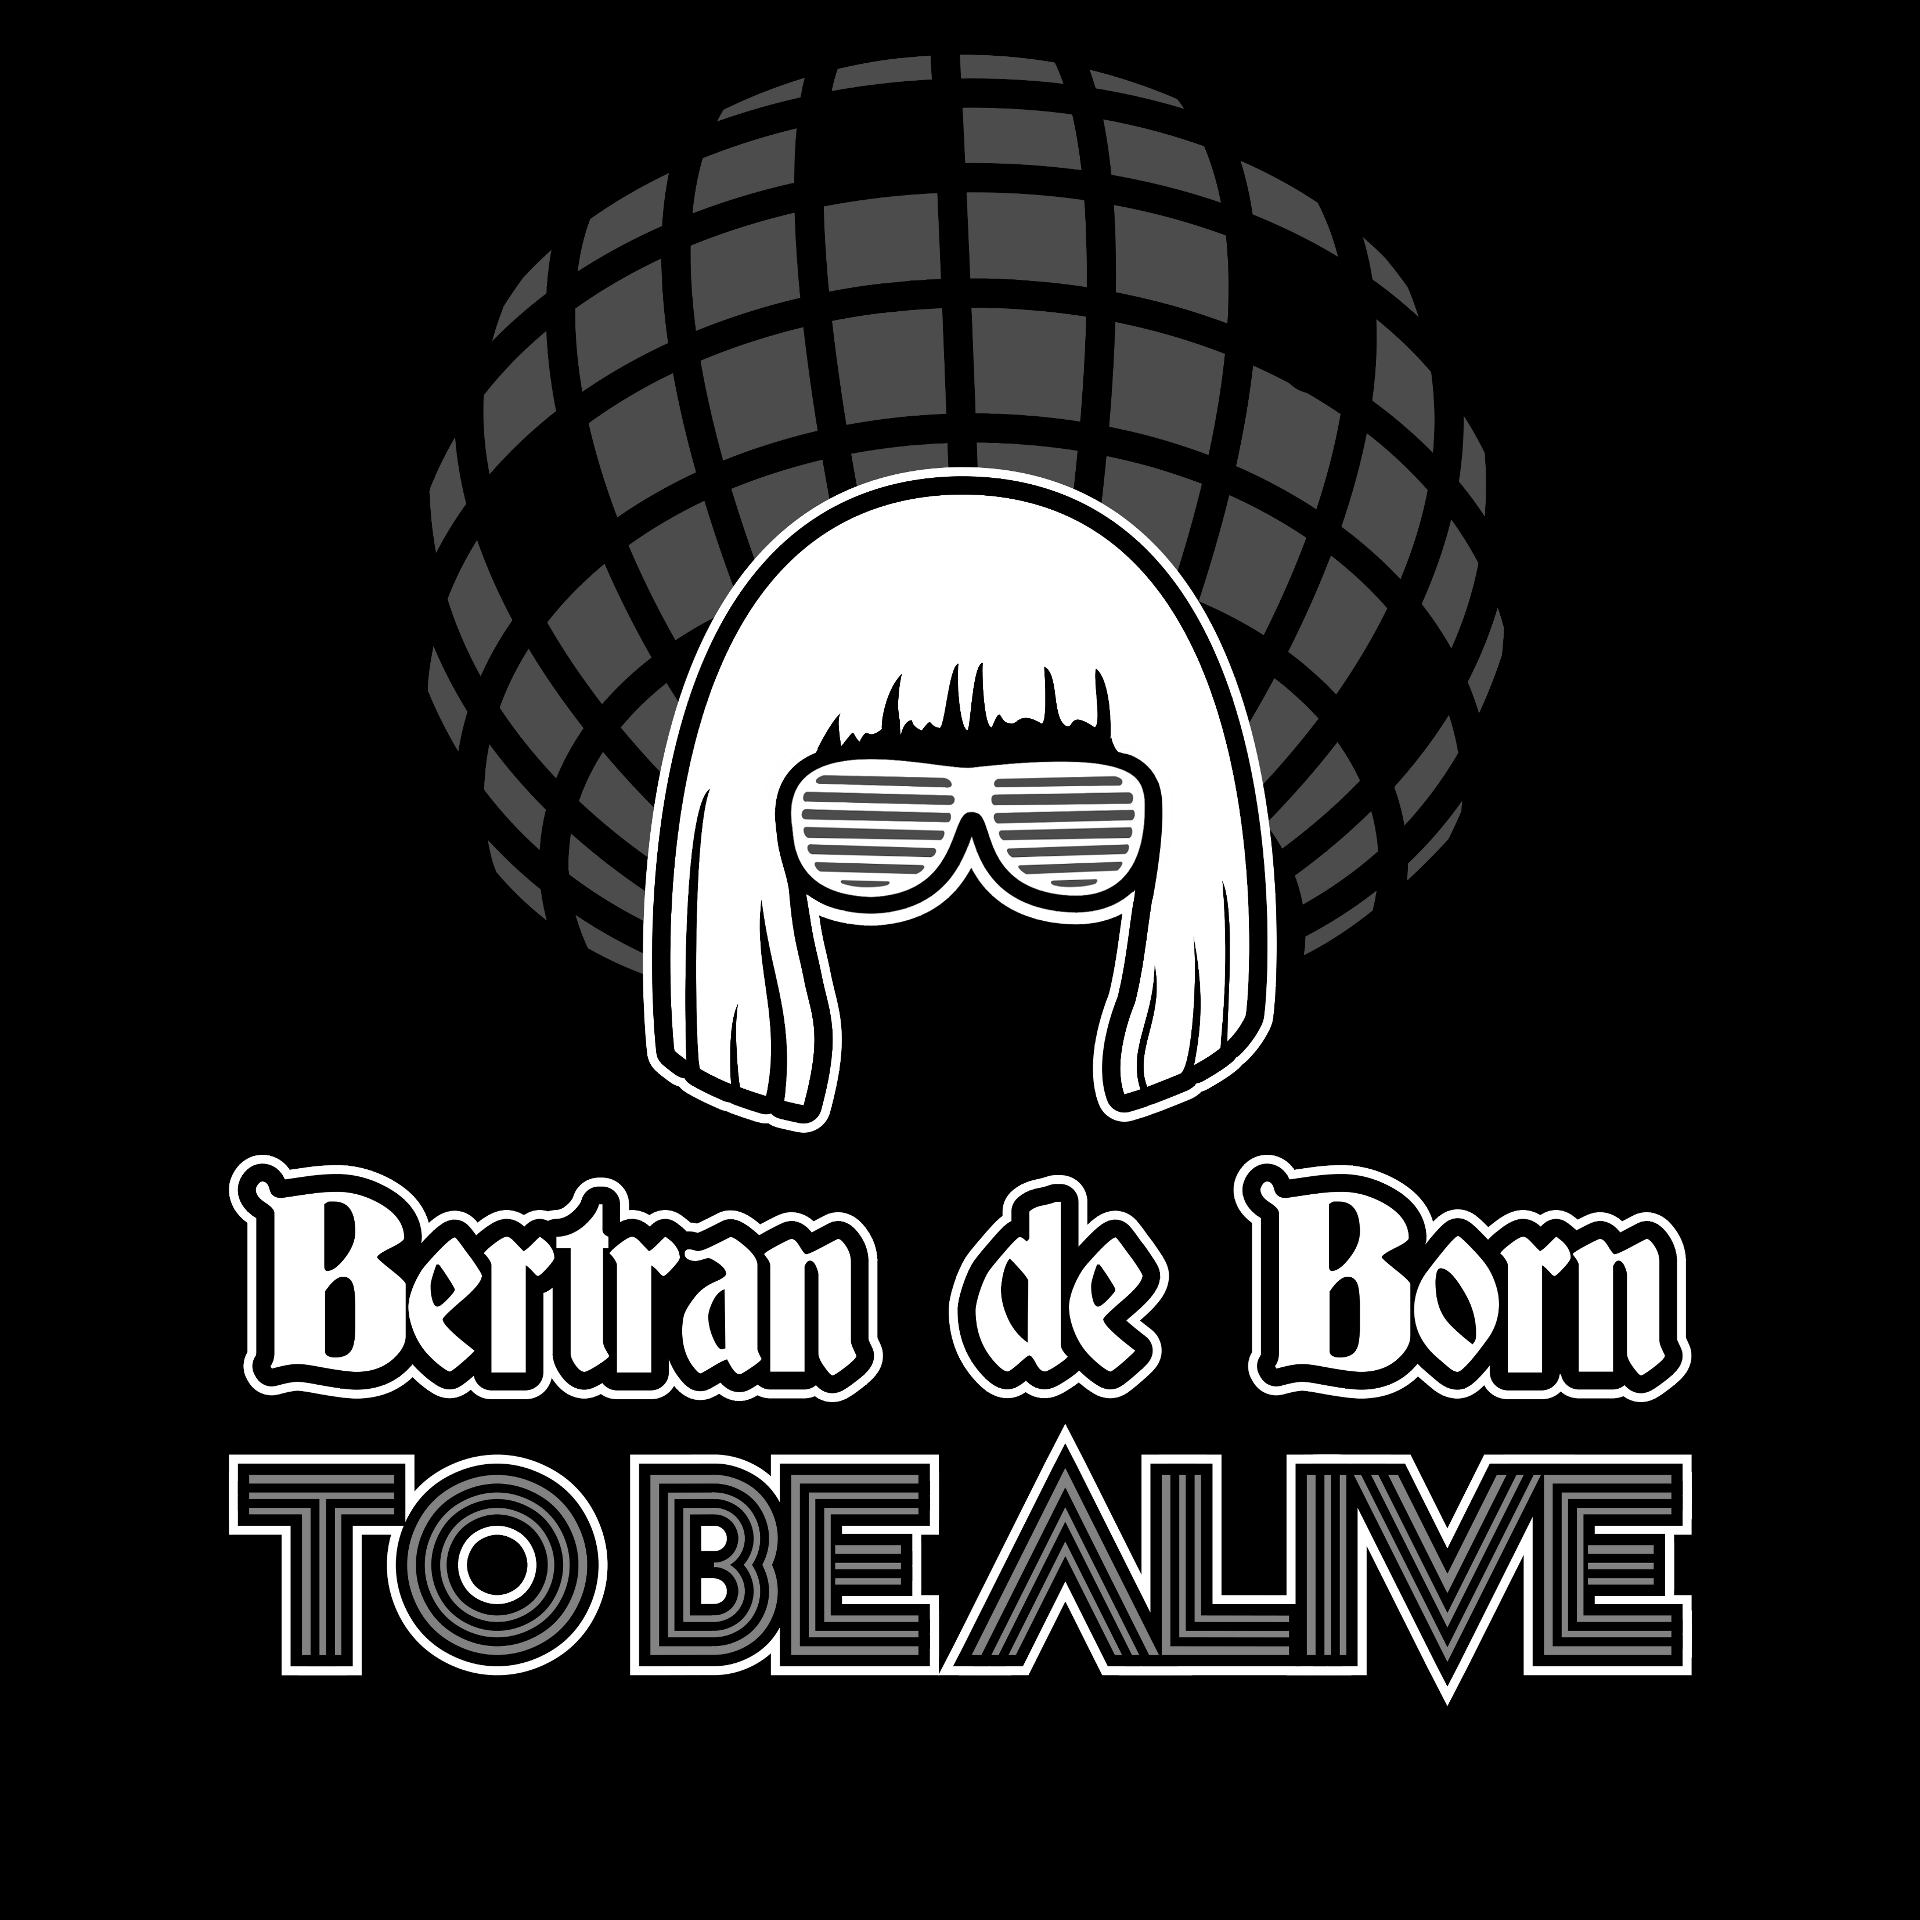 Bertran de Born To Be Alive